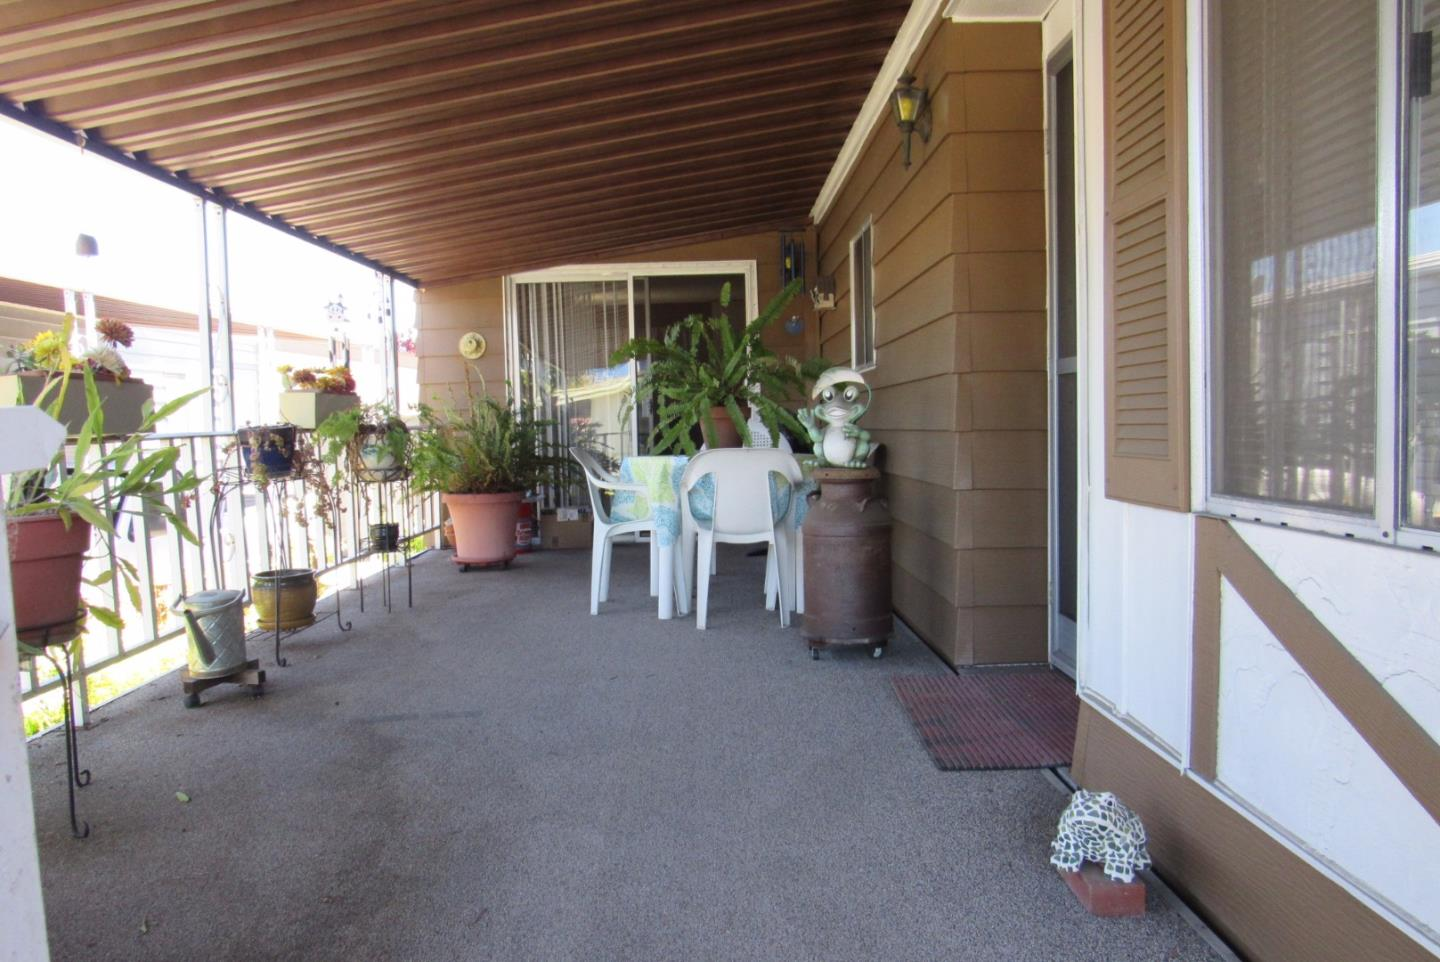 Additional photo for property listing at 690 Persian Drive  Sunnyvale, カリフォルニア 94089 アメリカ合衆国